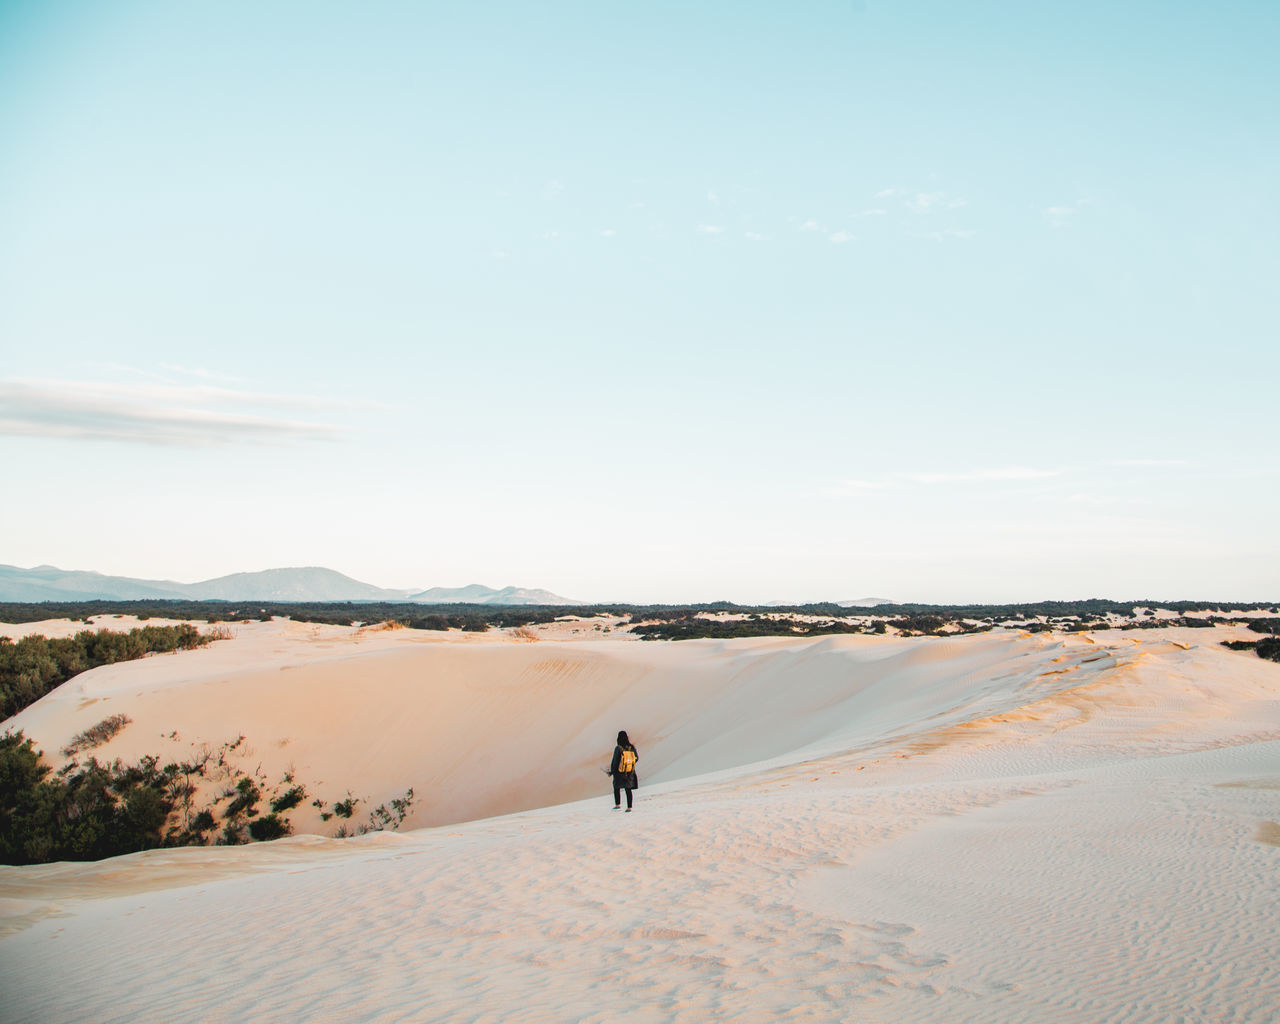 Keep it wild Sand Desert Sky Clear Sky Nature One Person Beauty In Nature Landscape Outdoors The Great Outdoors - 2017 EyeEm Awards Dreamlike Blue Australia The Big Drift Wilsons Promontory Tinypeopleinbigplaces Silhouette Silhouette_collection Tiny People Travel Travel Destinations Travel Photography